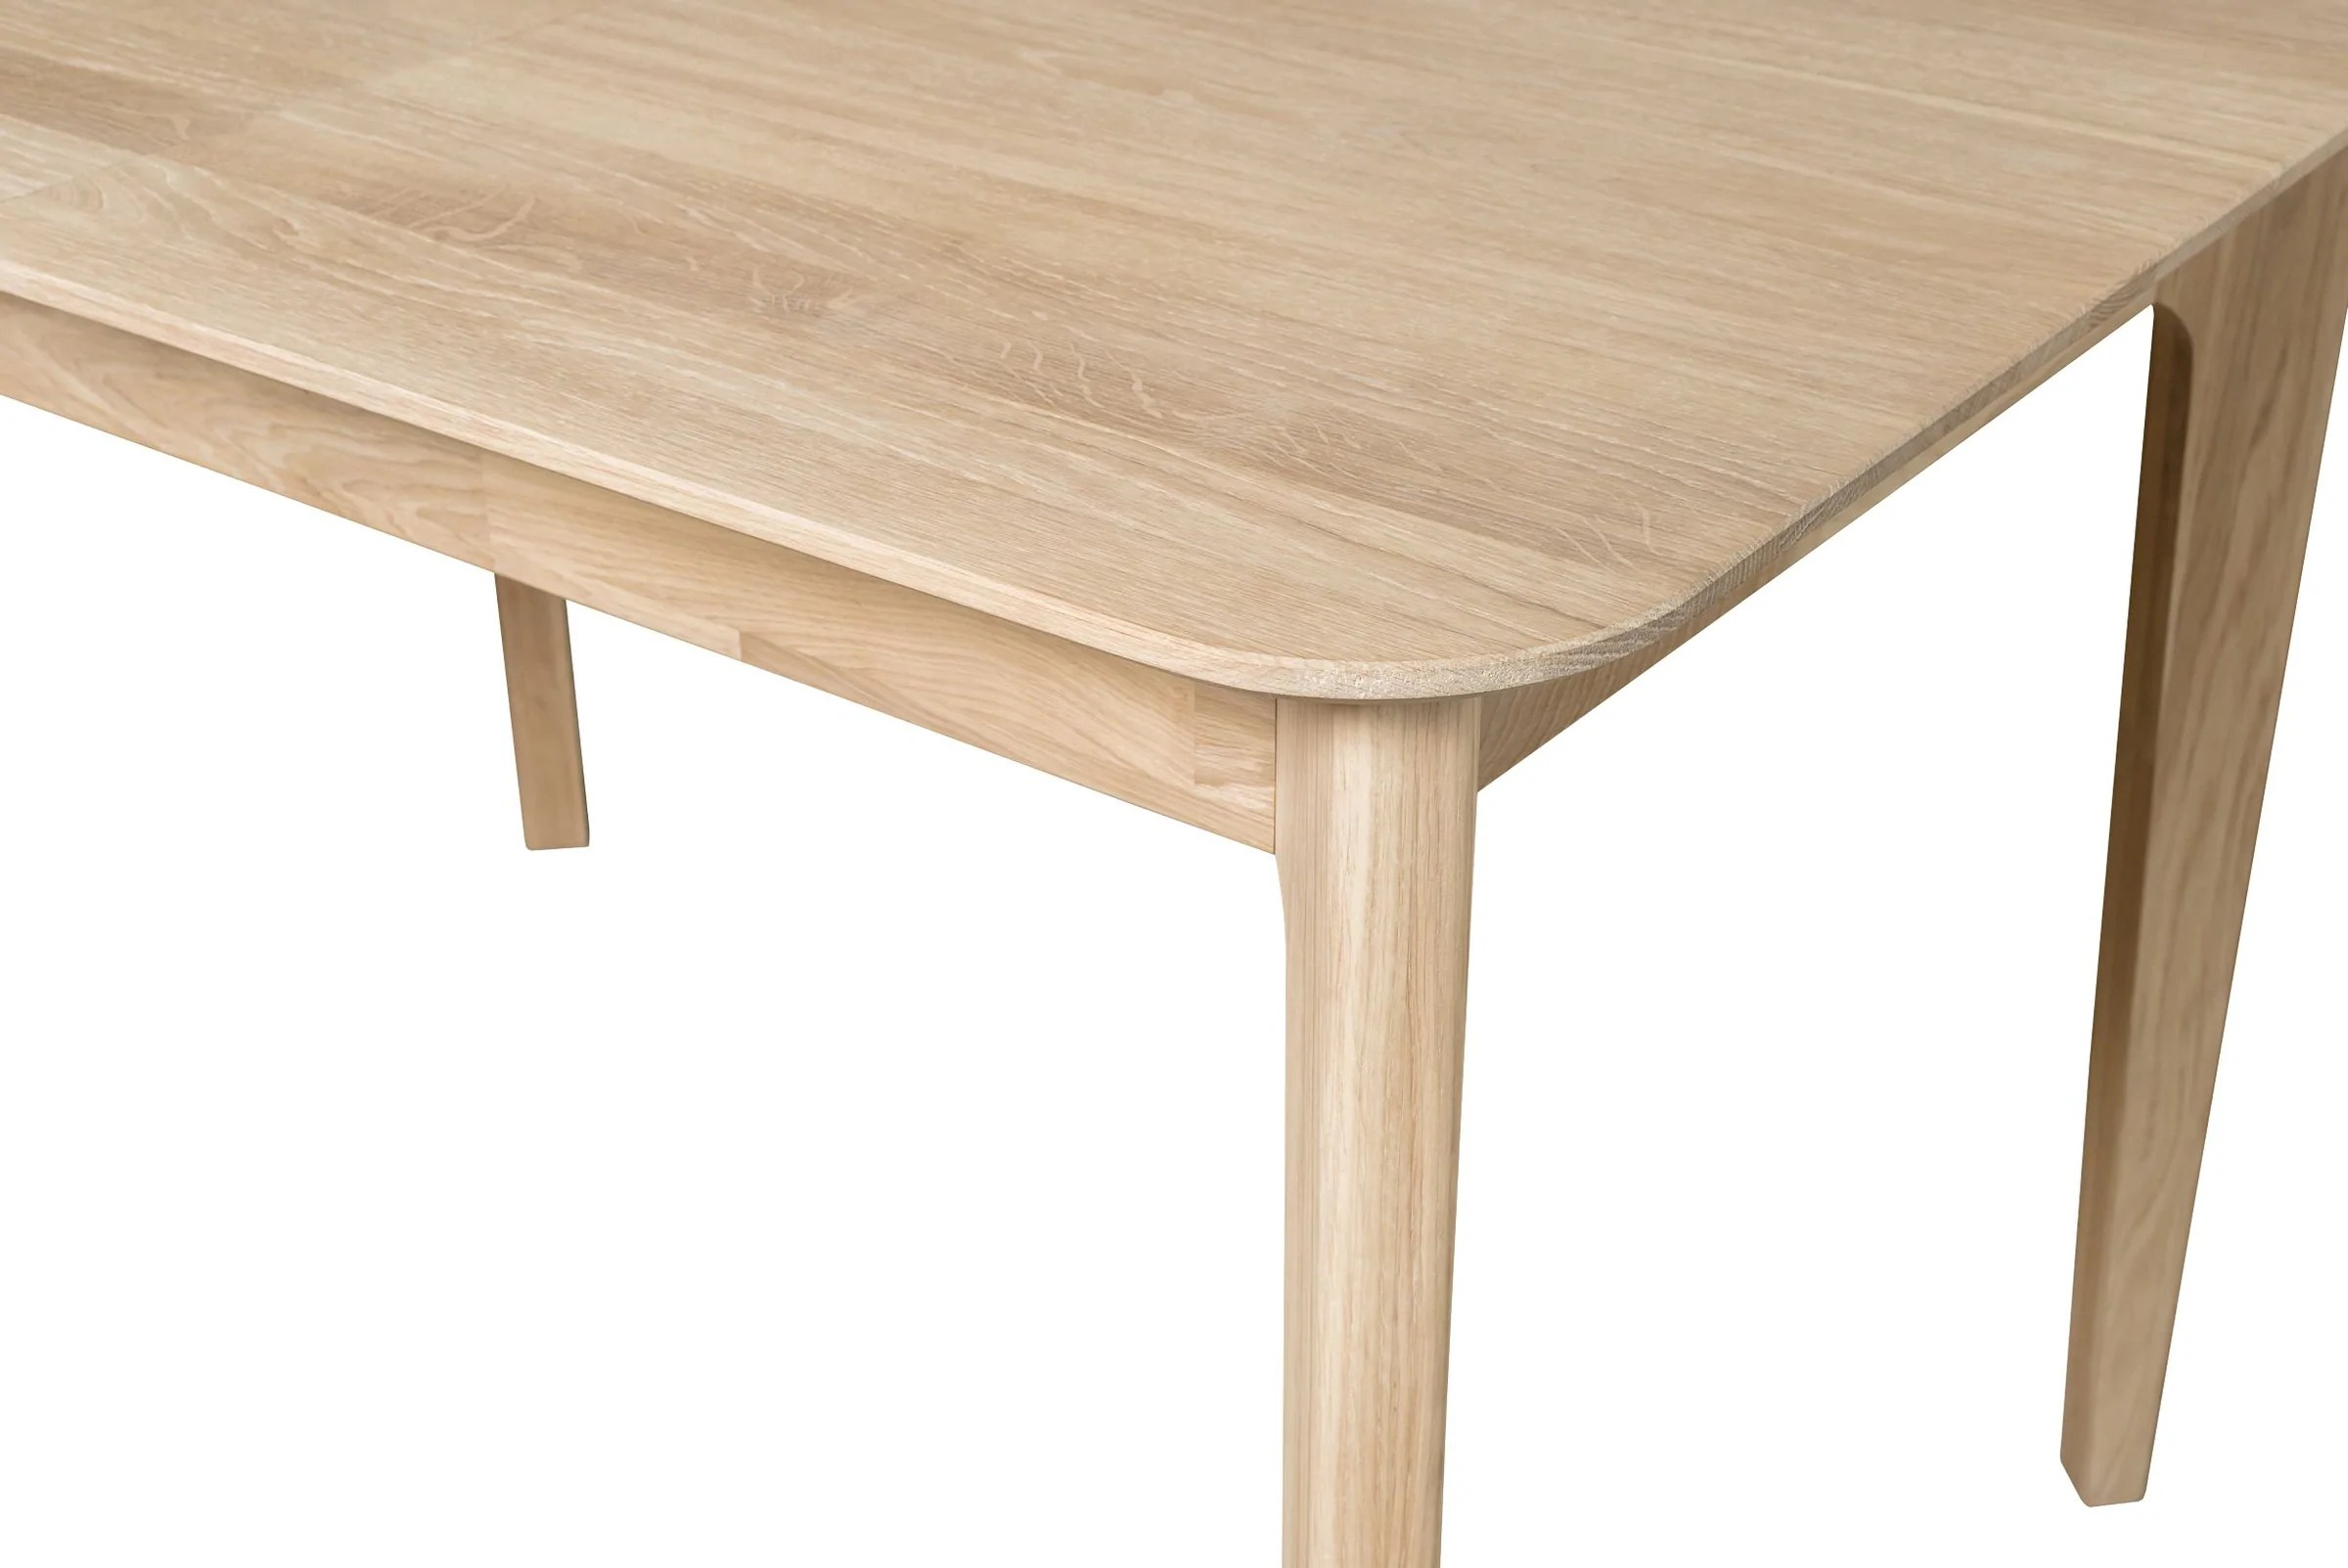 nordicstory extendable solid oak dining table france 120 160 x 80 x 75 cm